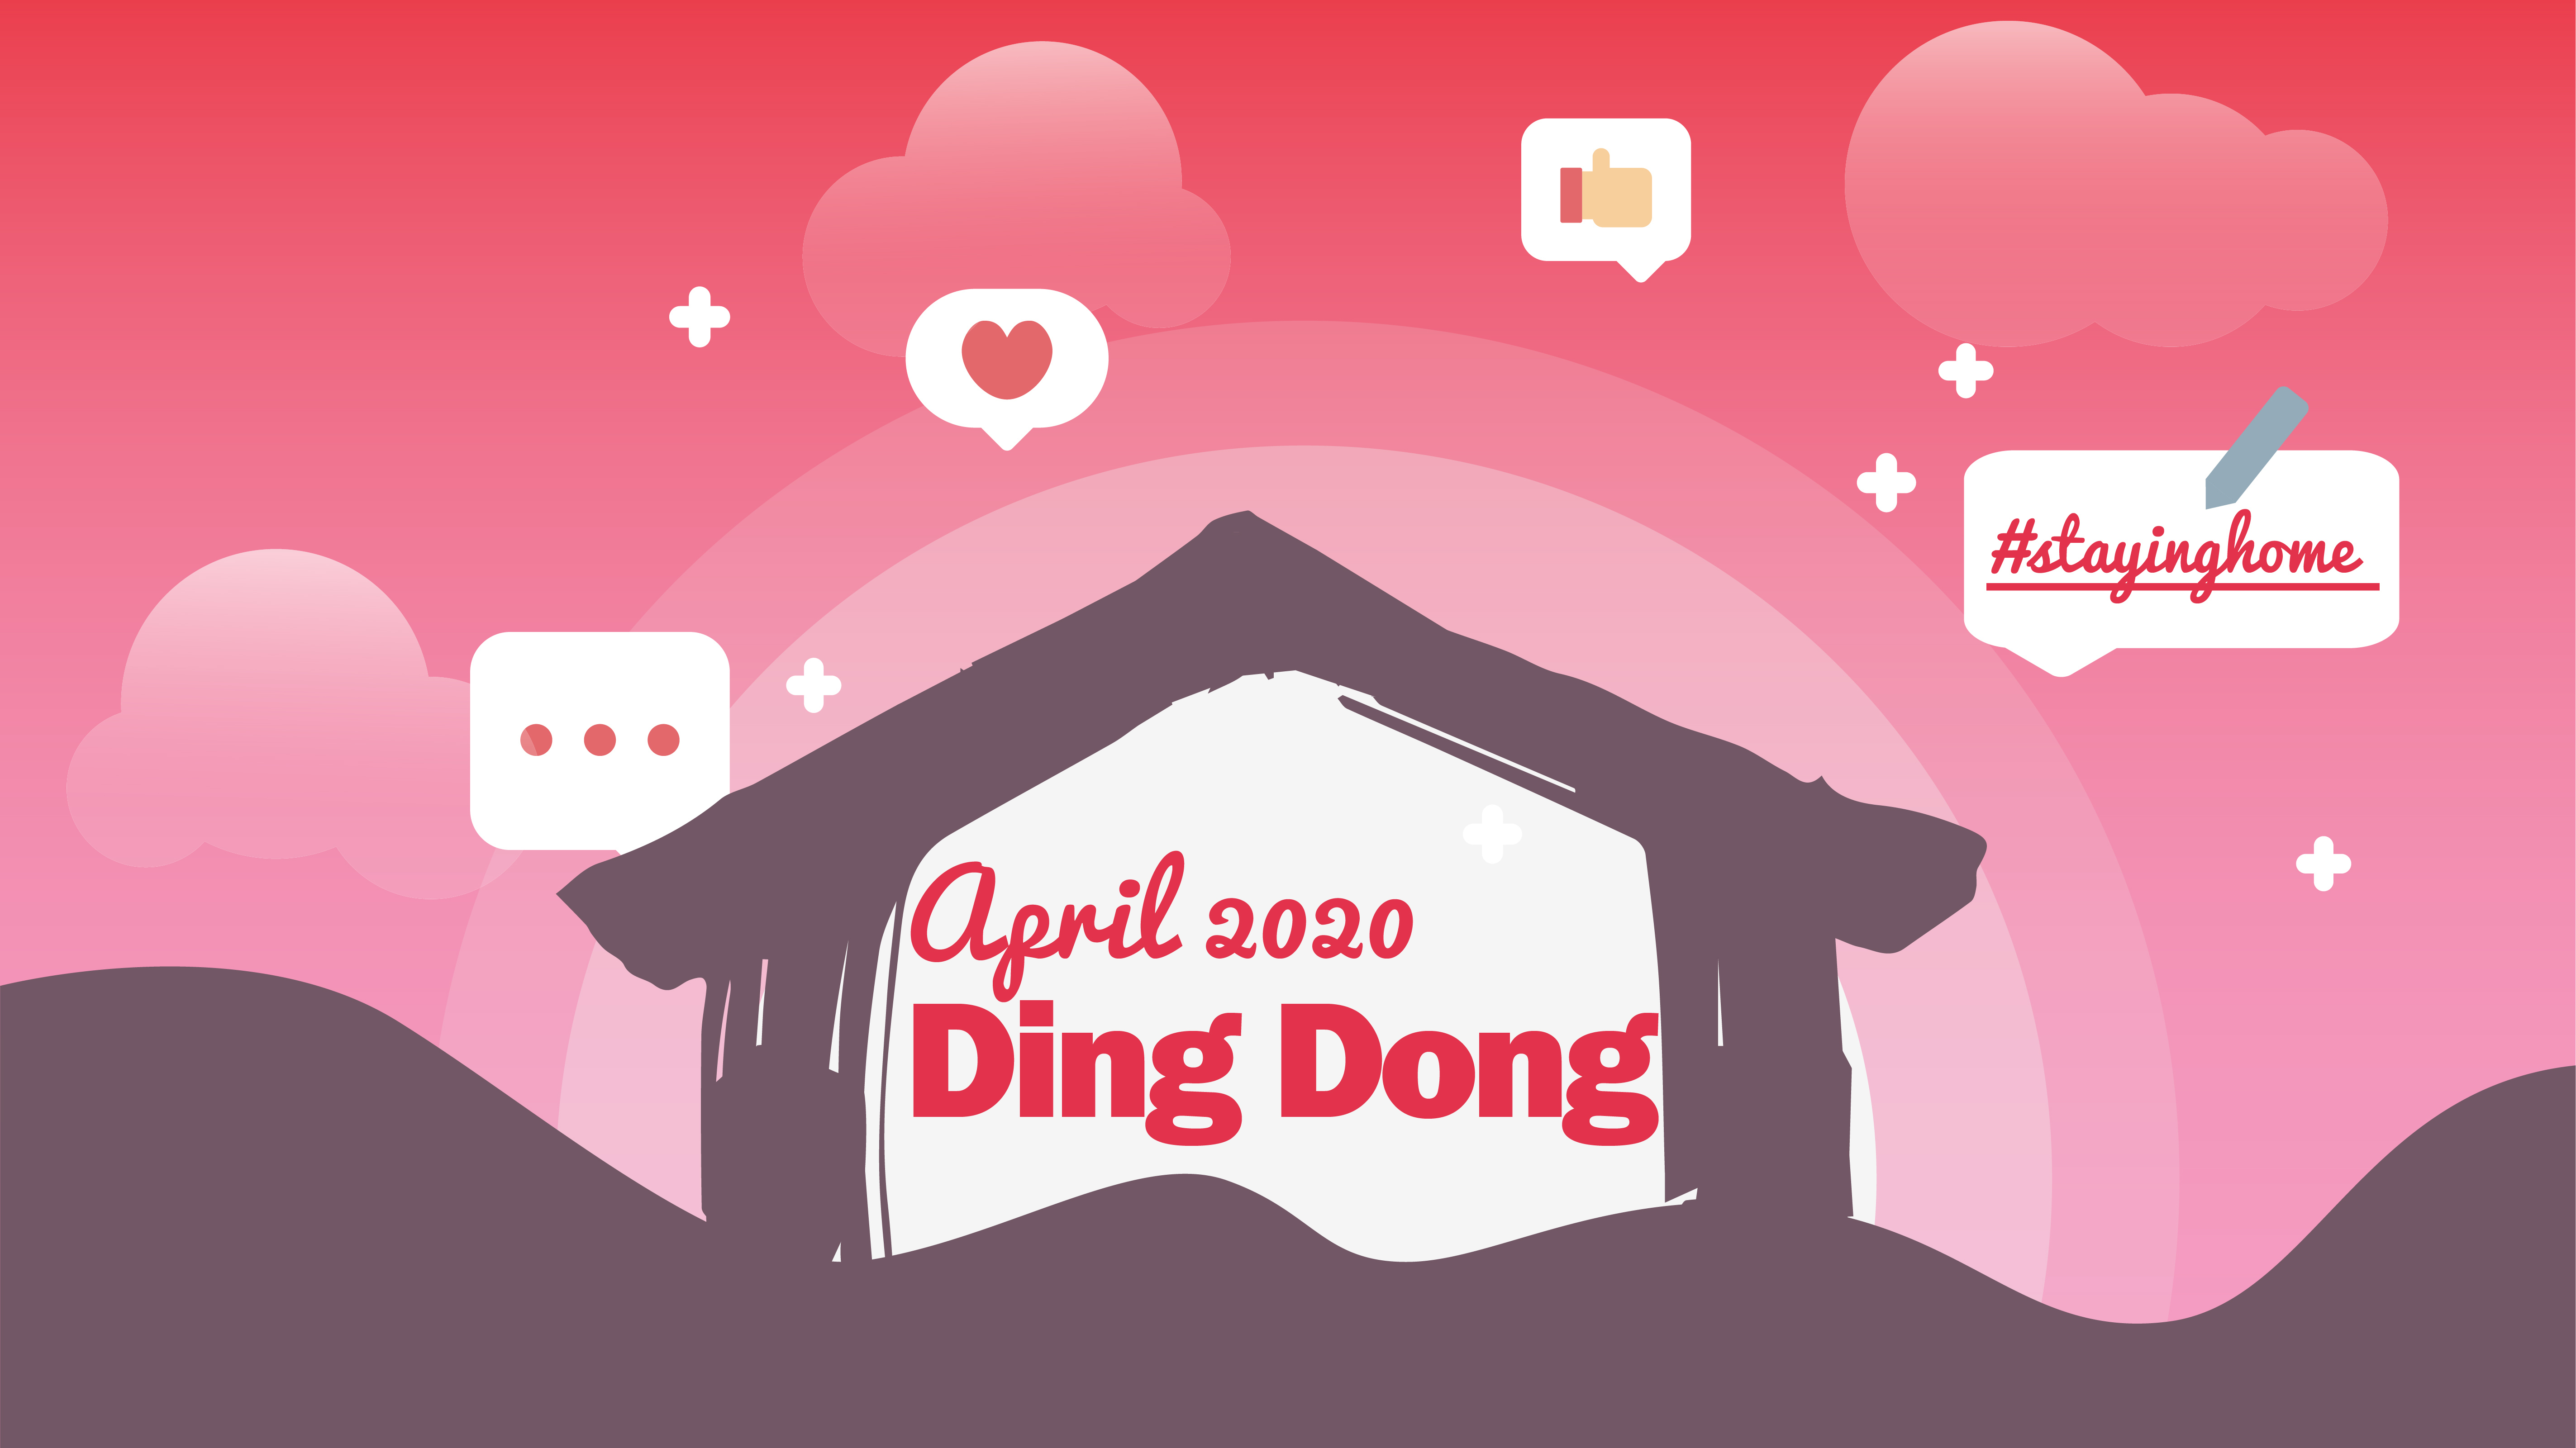 april ding dong #stayhome